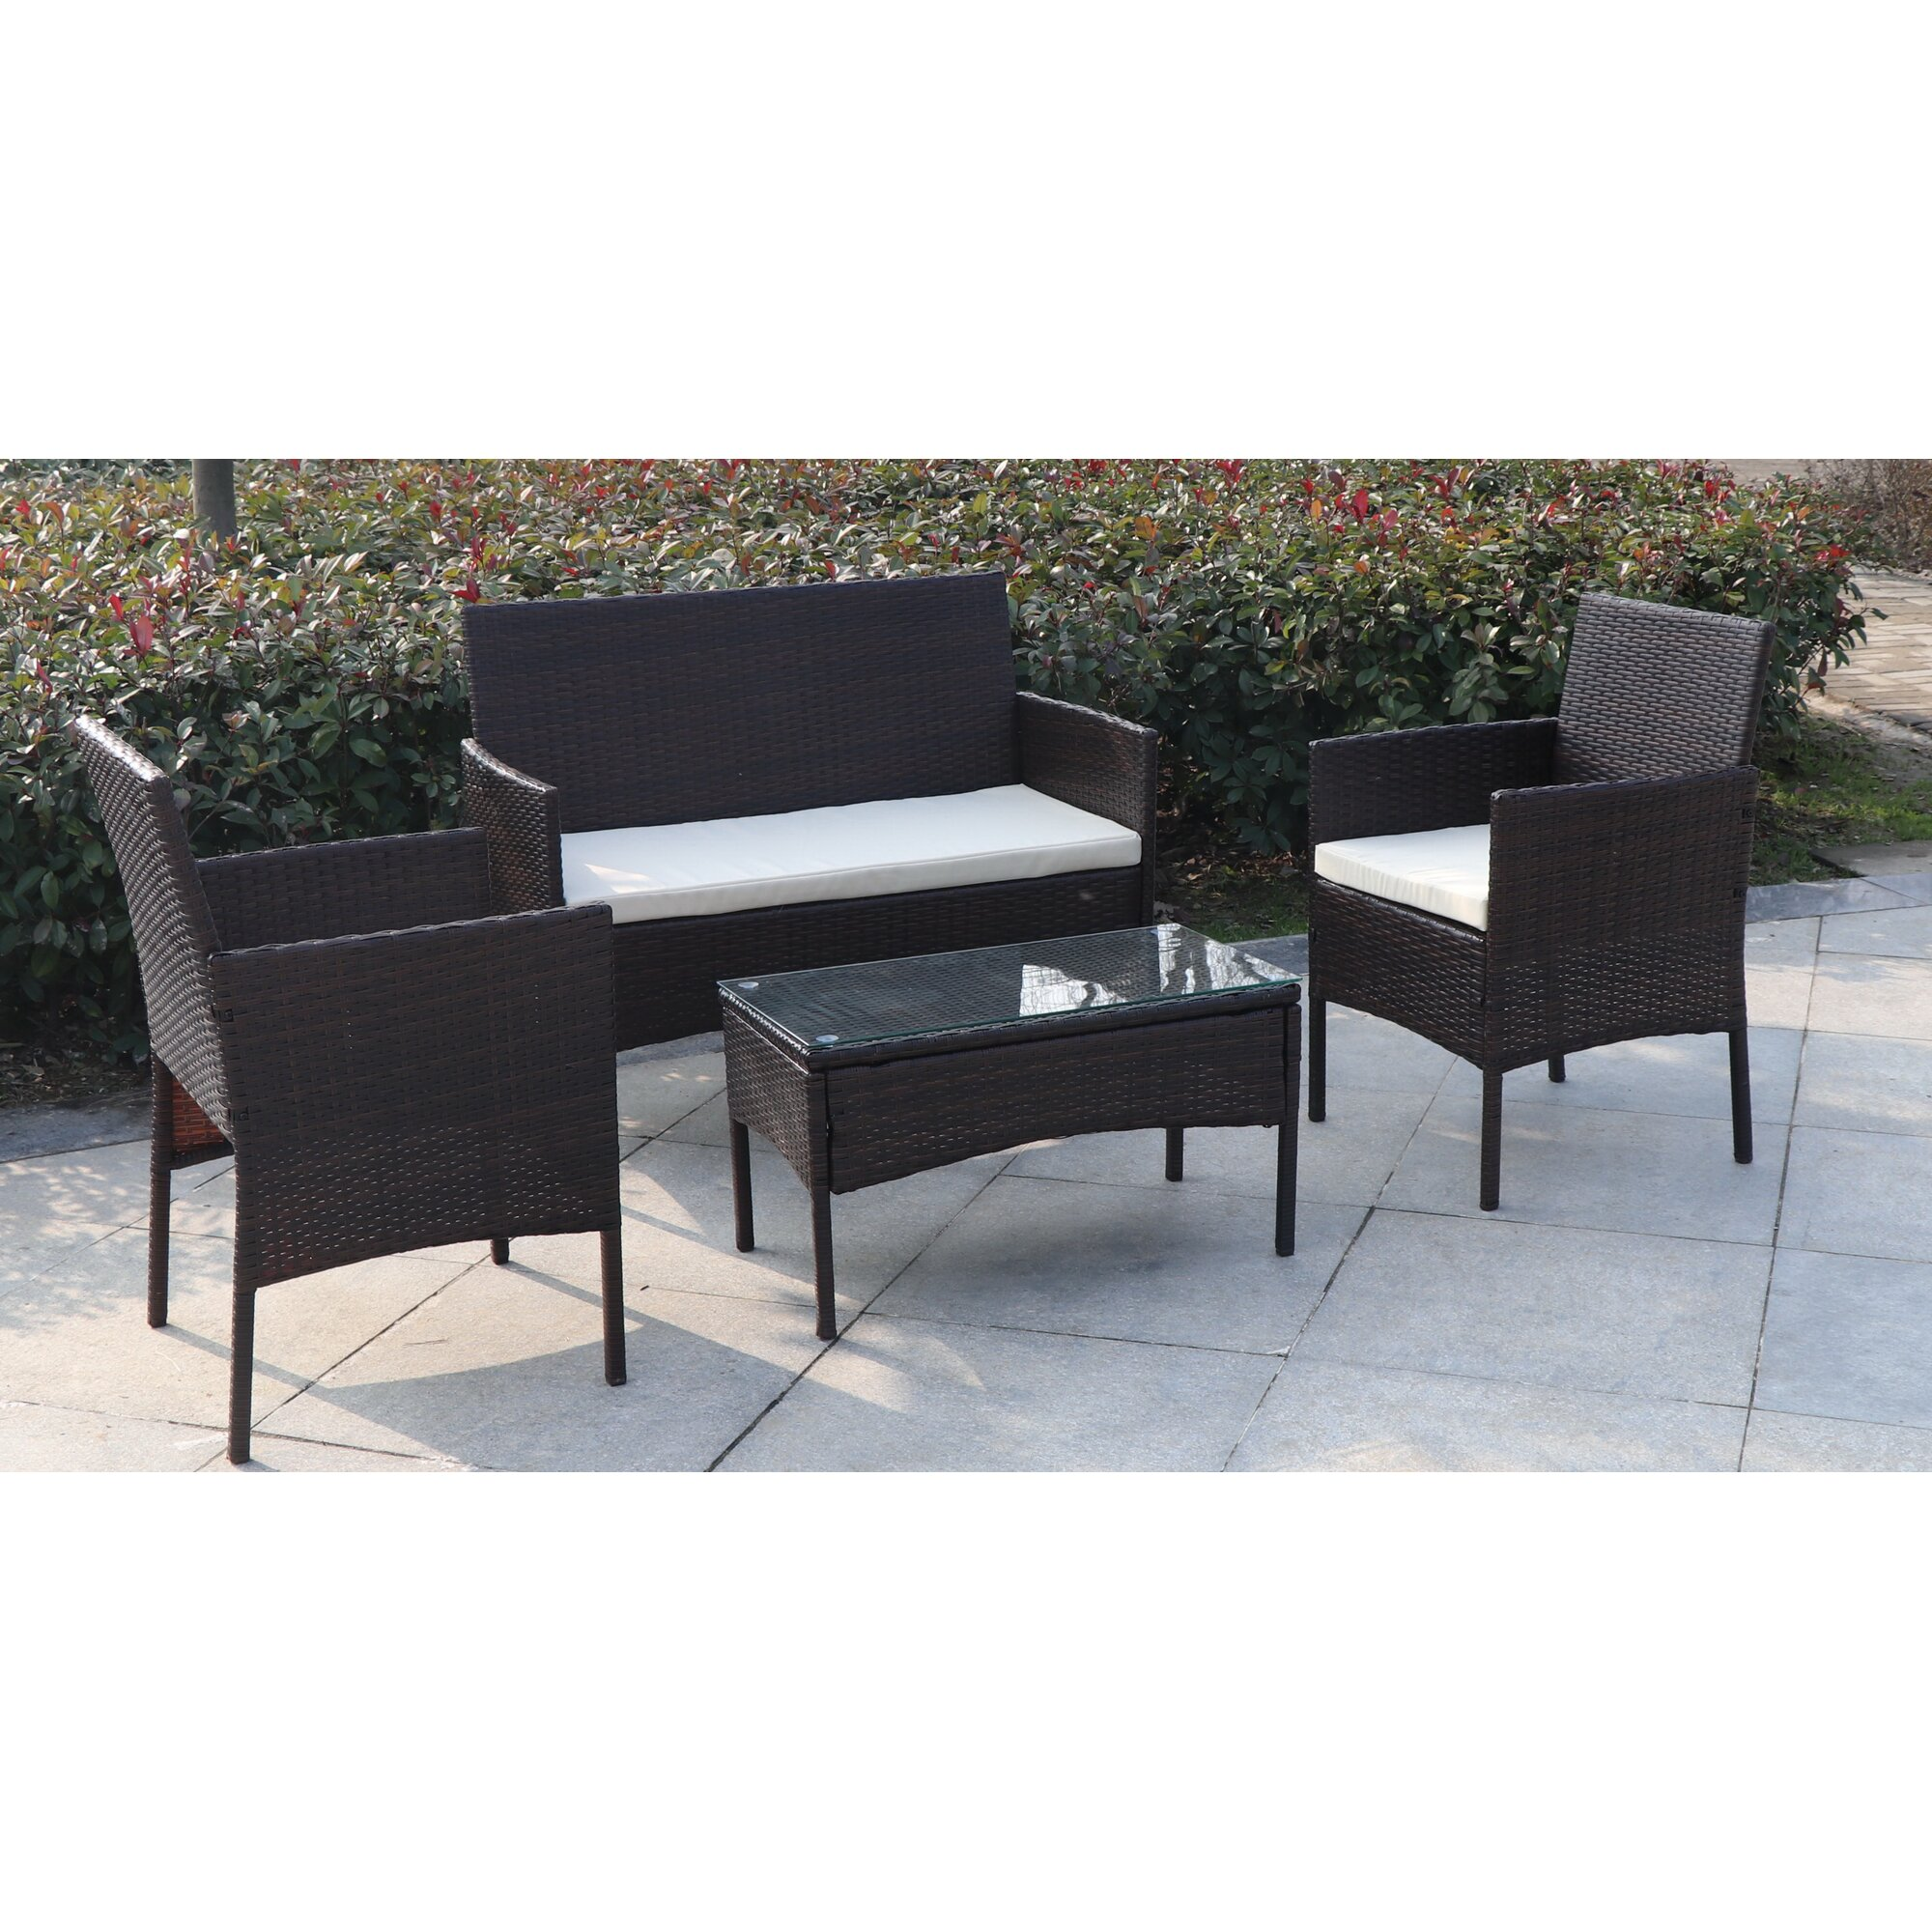 Jj International Madison 4 Piece Wicker Seating Group With Cushion . Madison  Fireplace And Patio ...